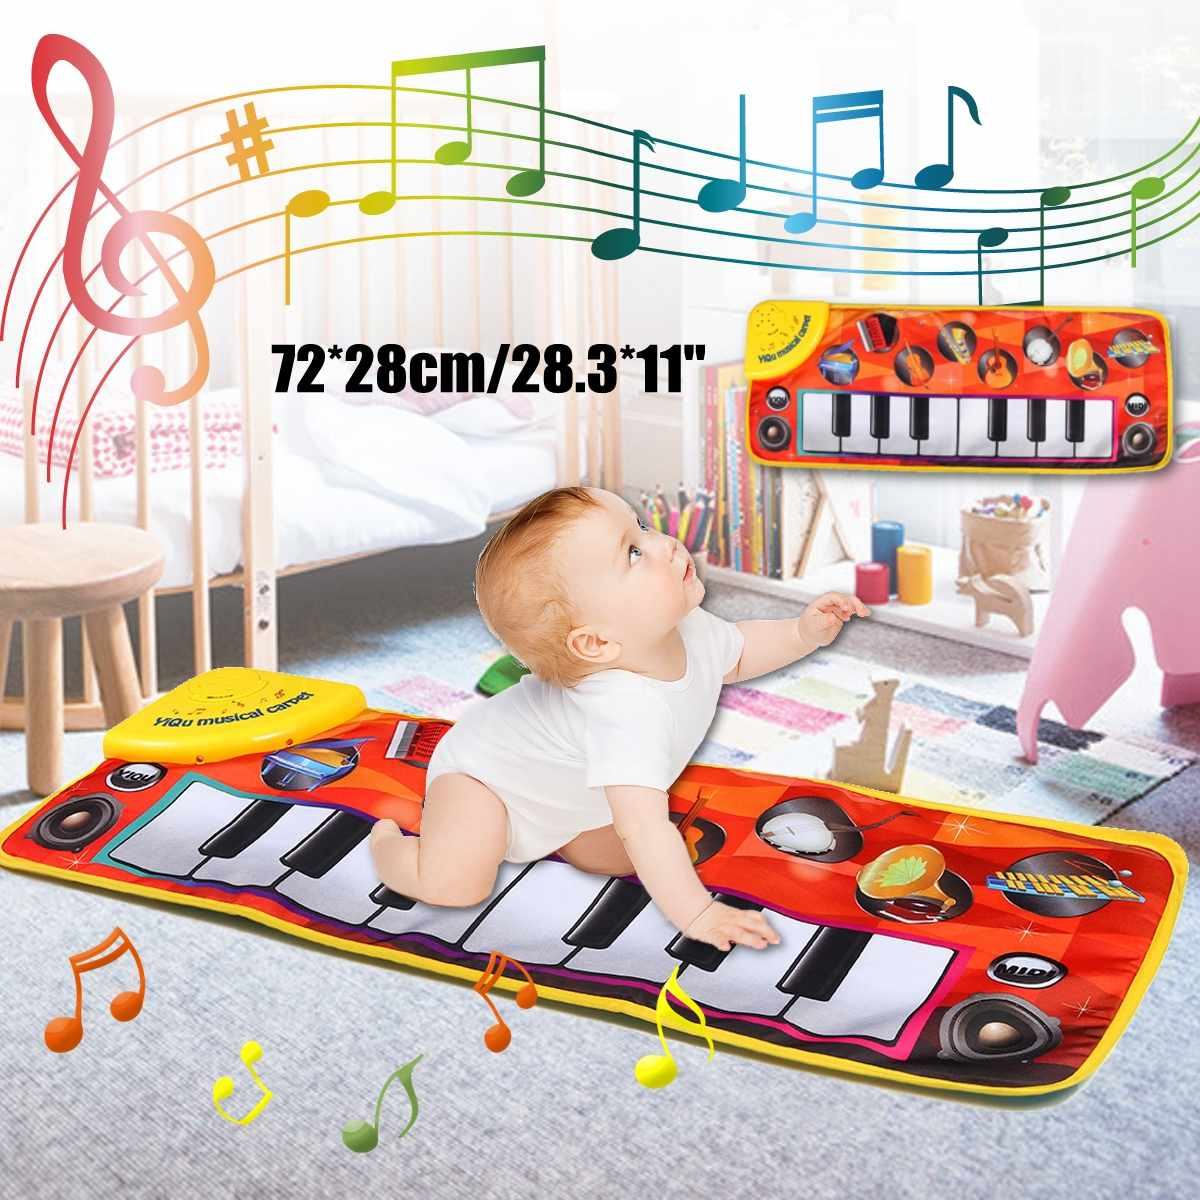 72x28cm Kids Baby Early Education Music Piano Keyboard Carpet Musical Mat Blanket Touch Play Safety Learn Singing Funny Toy